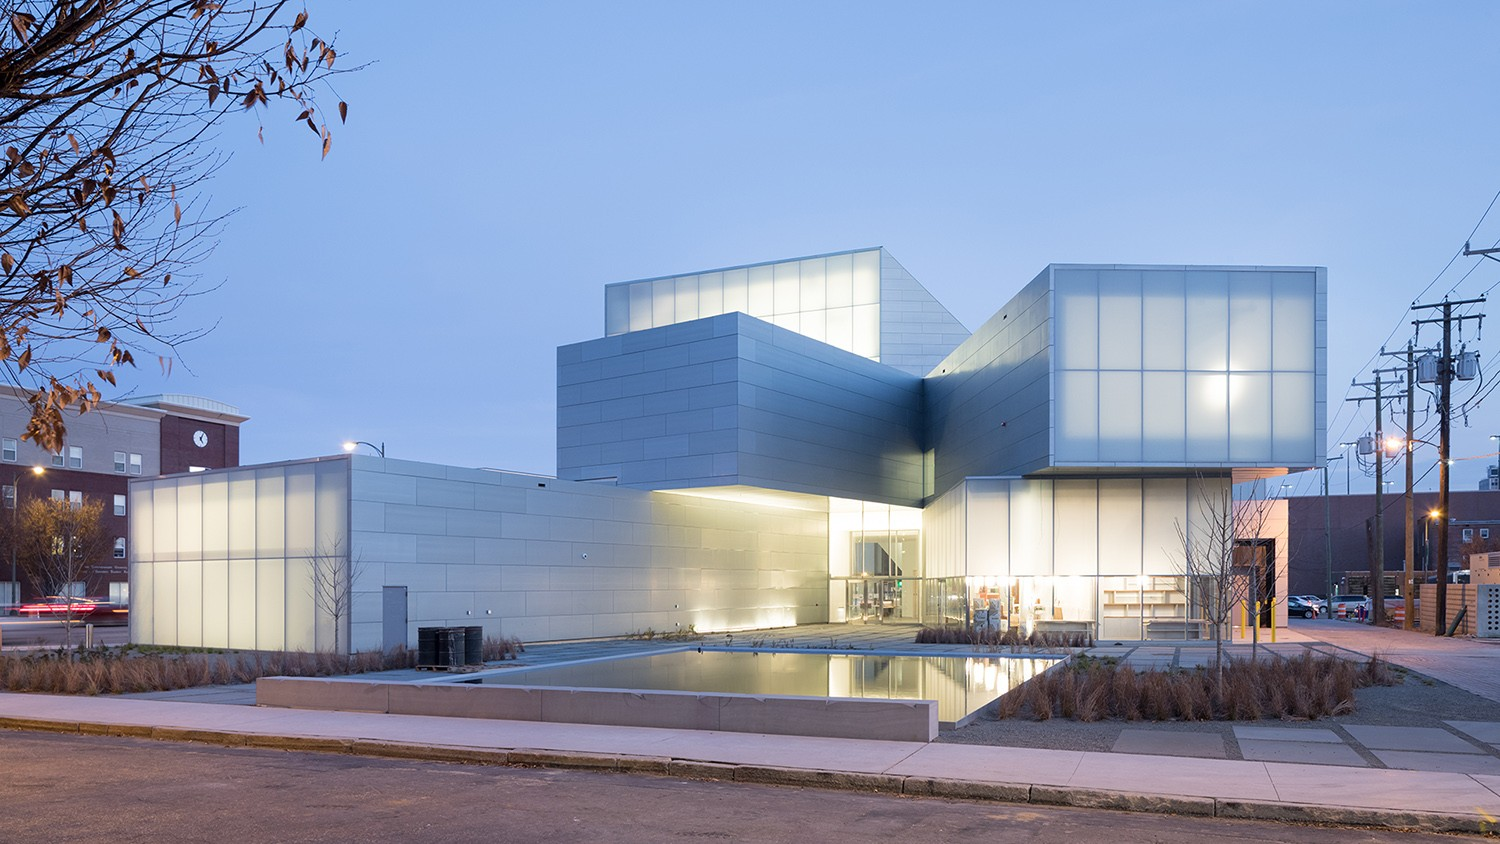 Institute for contemporary art vcu steven holl architects for New space architects